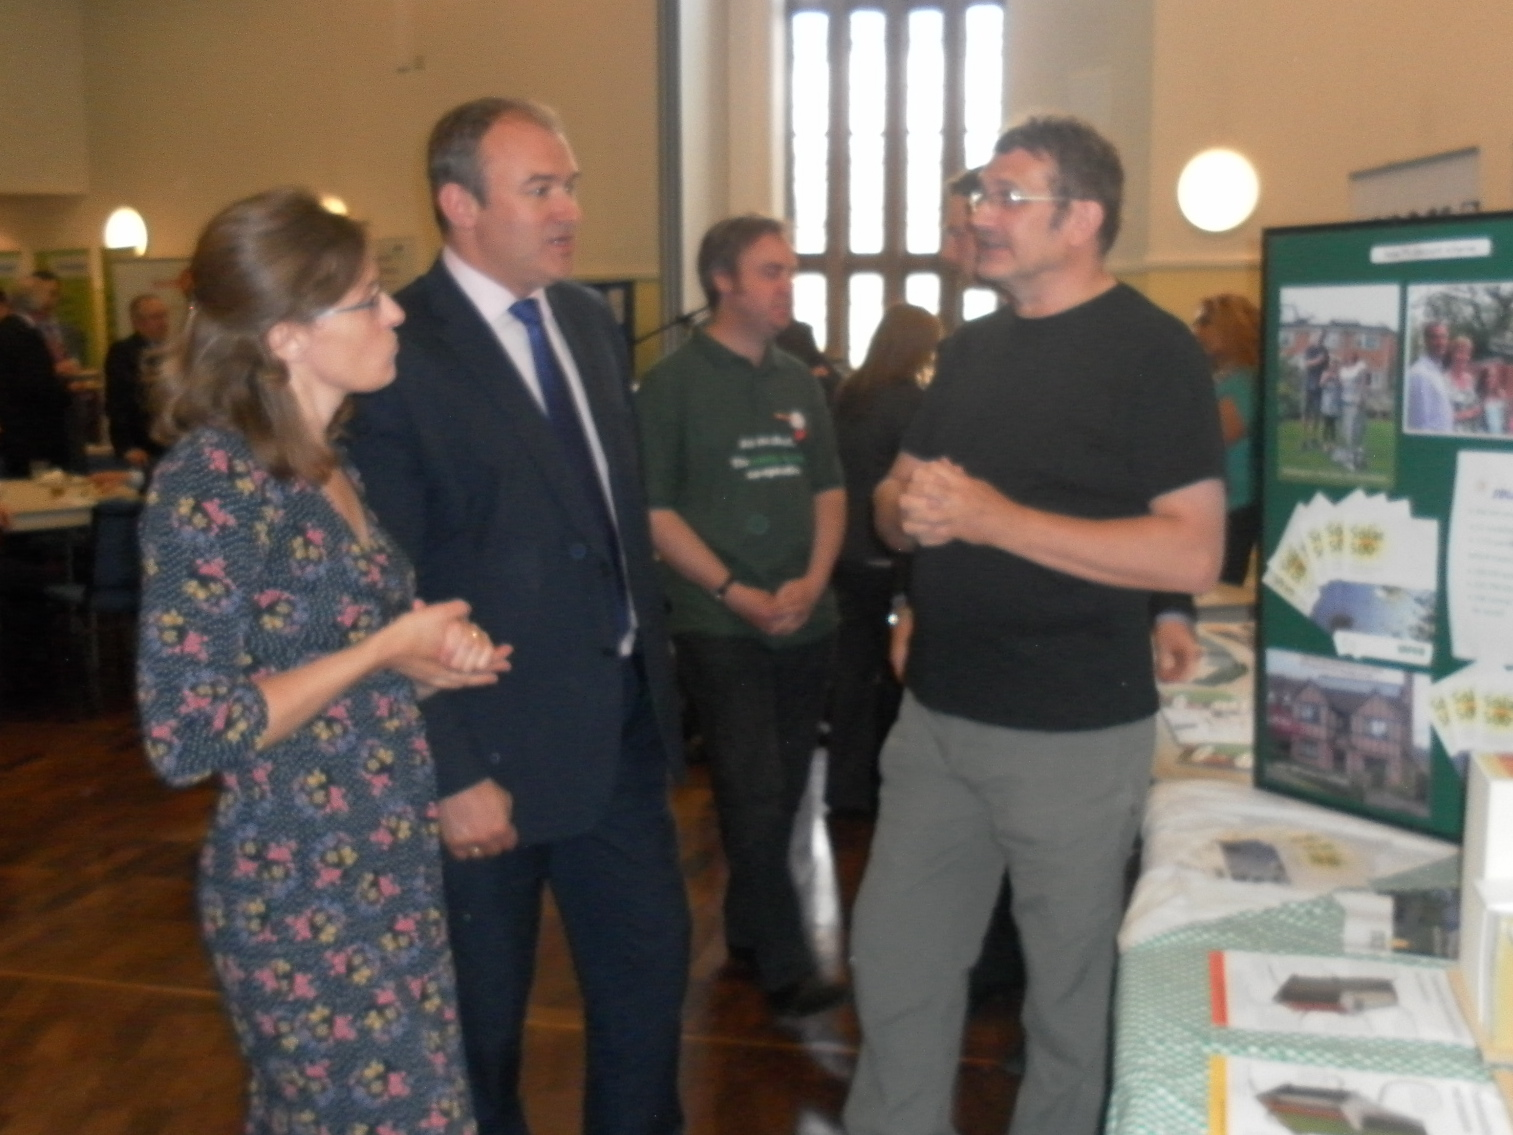 Kate Sadler (left) and Robin Tasker (right) talk with Ed Davey about the Goverment's Green Deal initiative